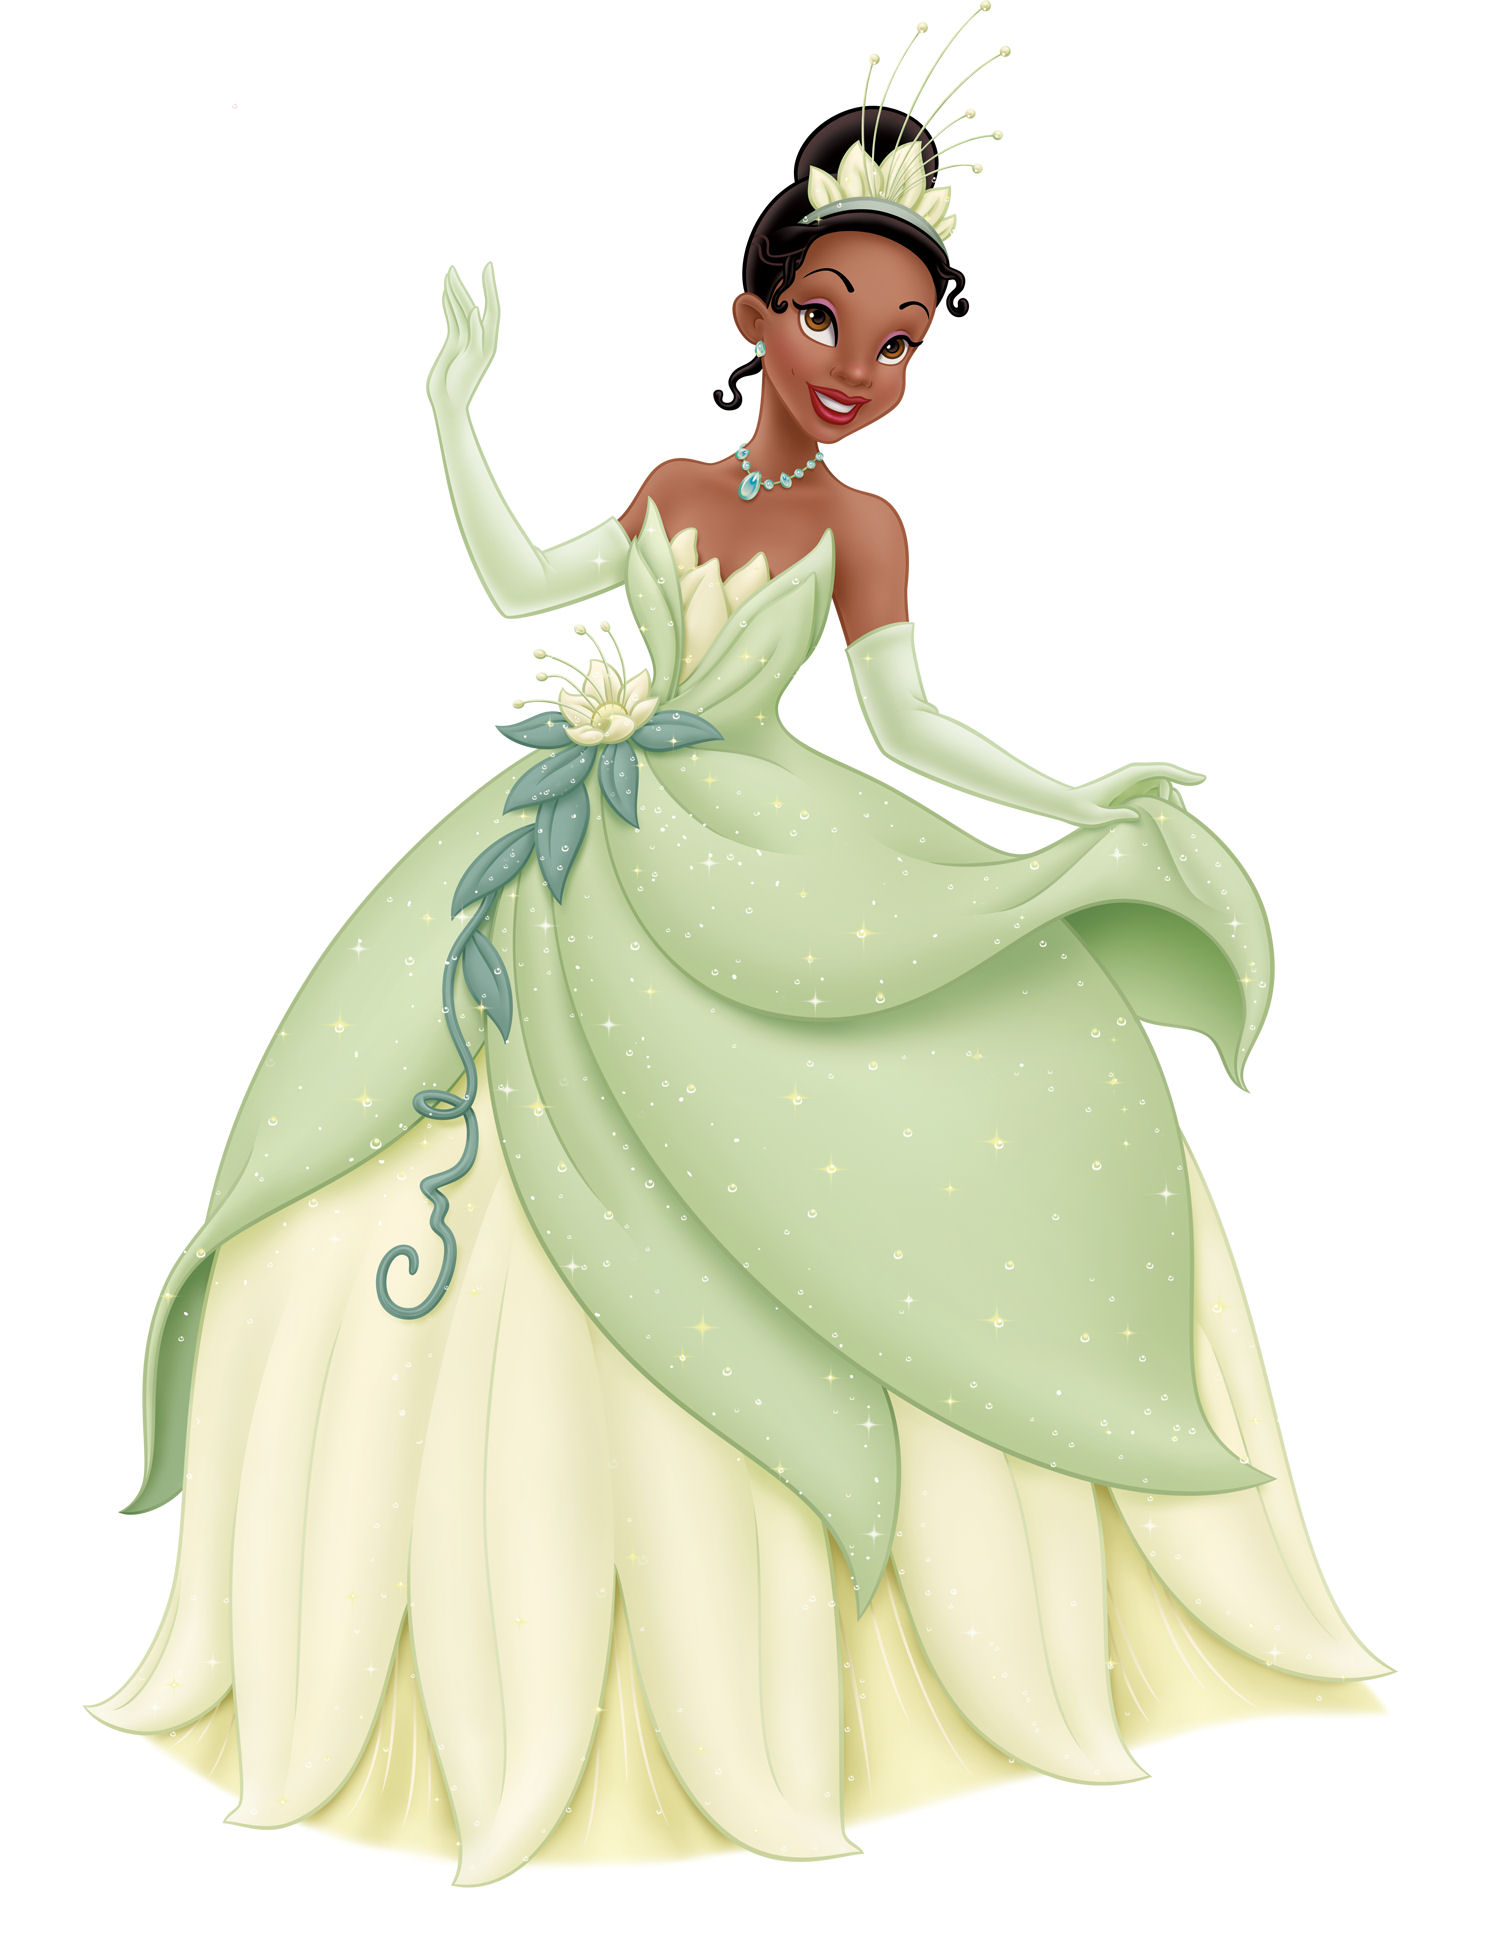 Anothr Tiana Pose Disney Princess Photo 33145047 Fanpop